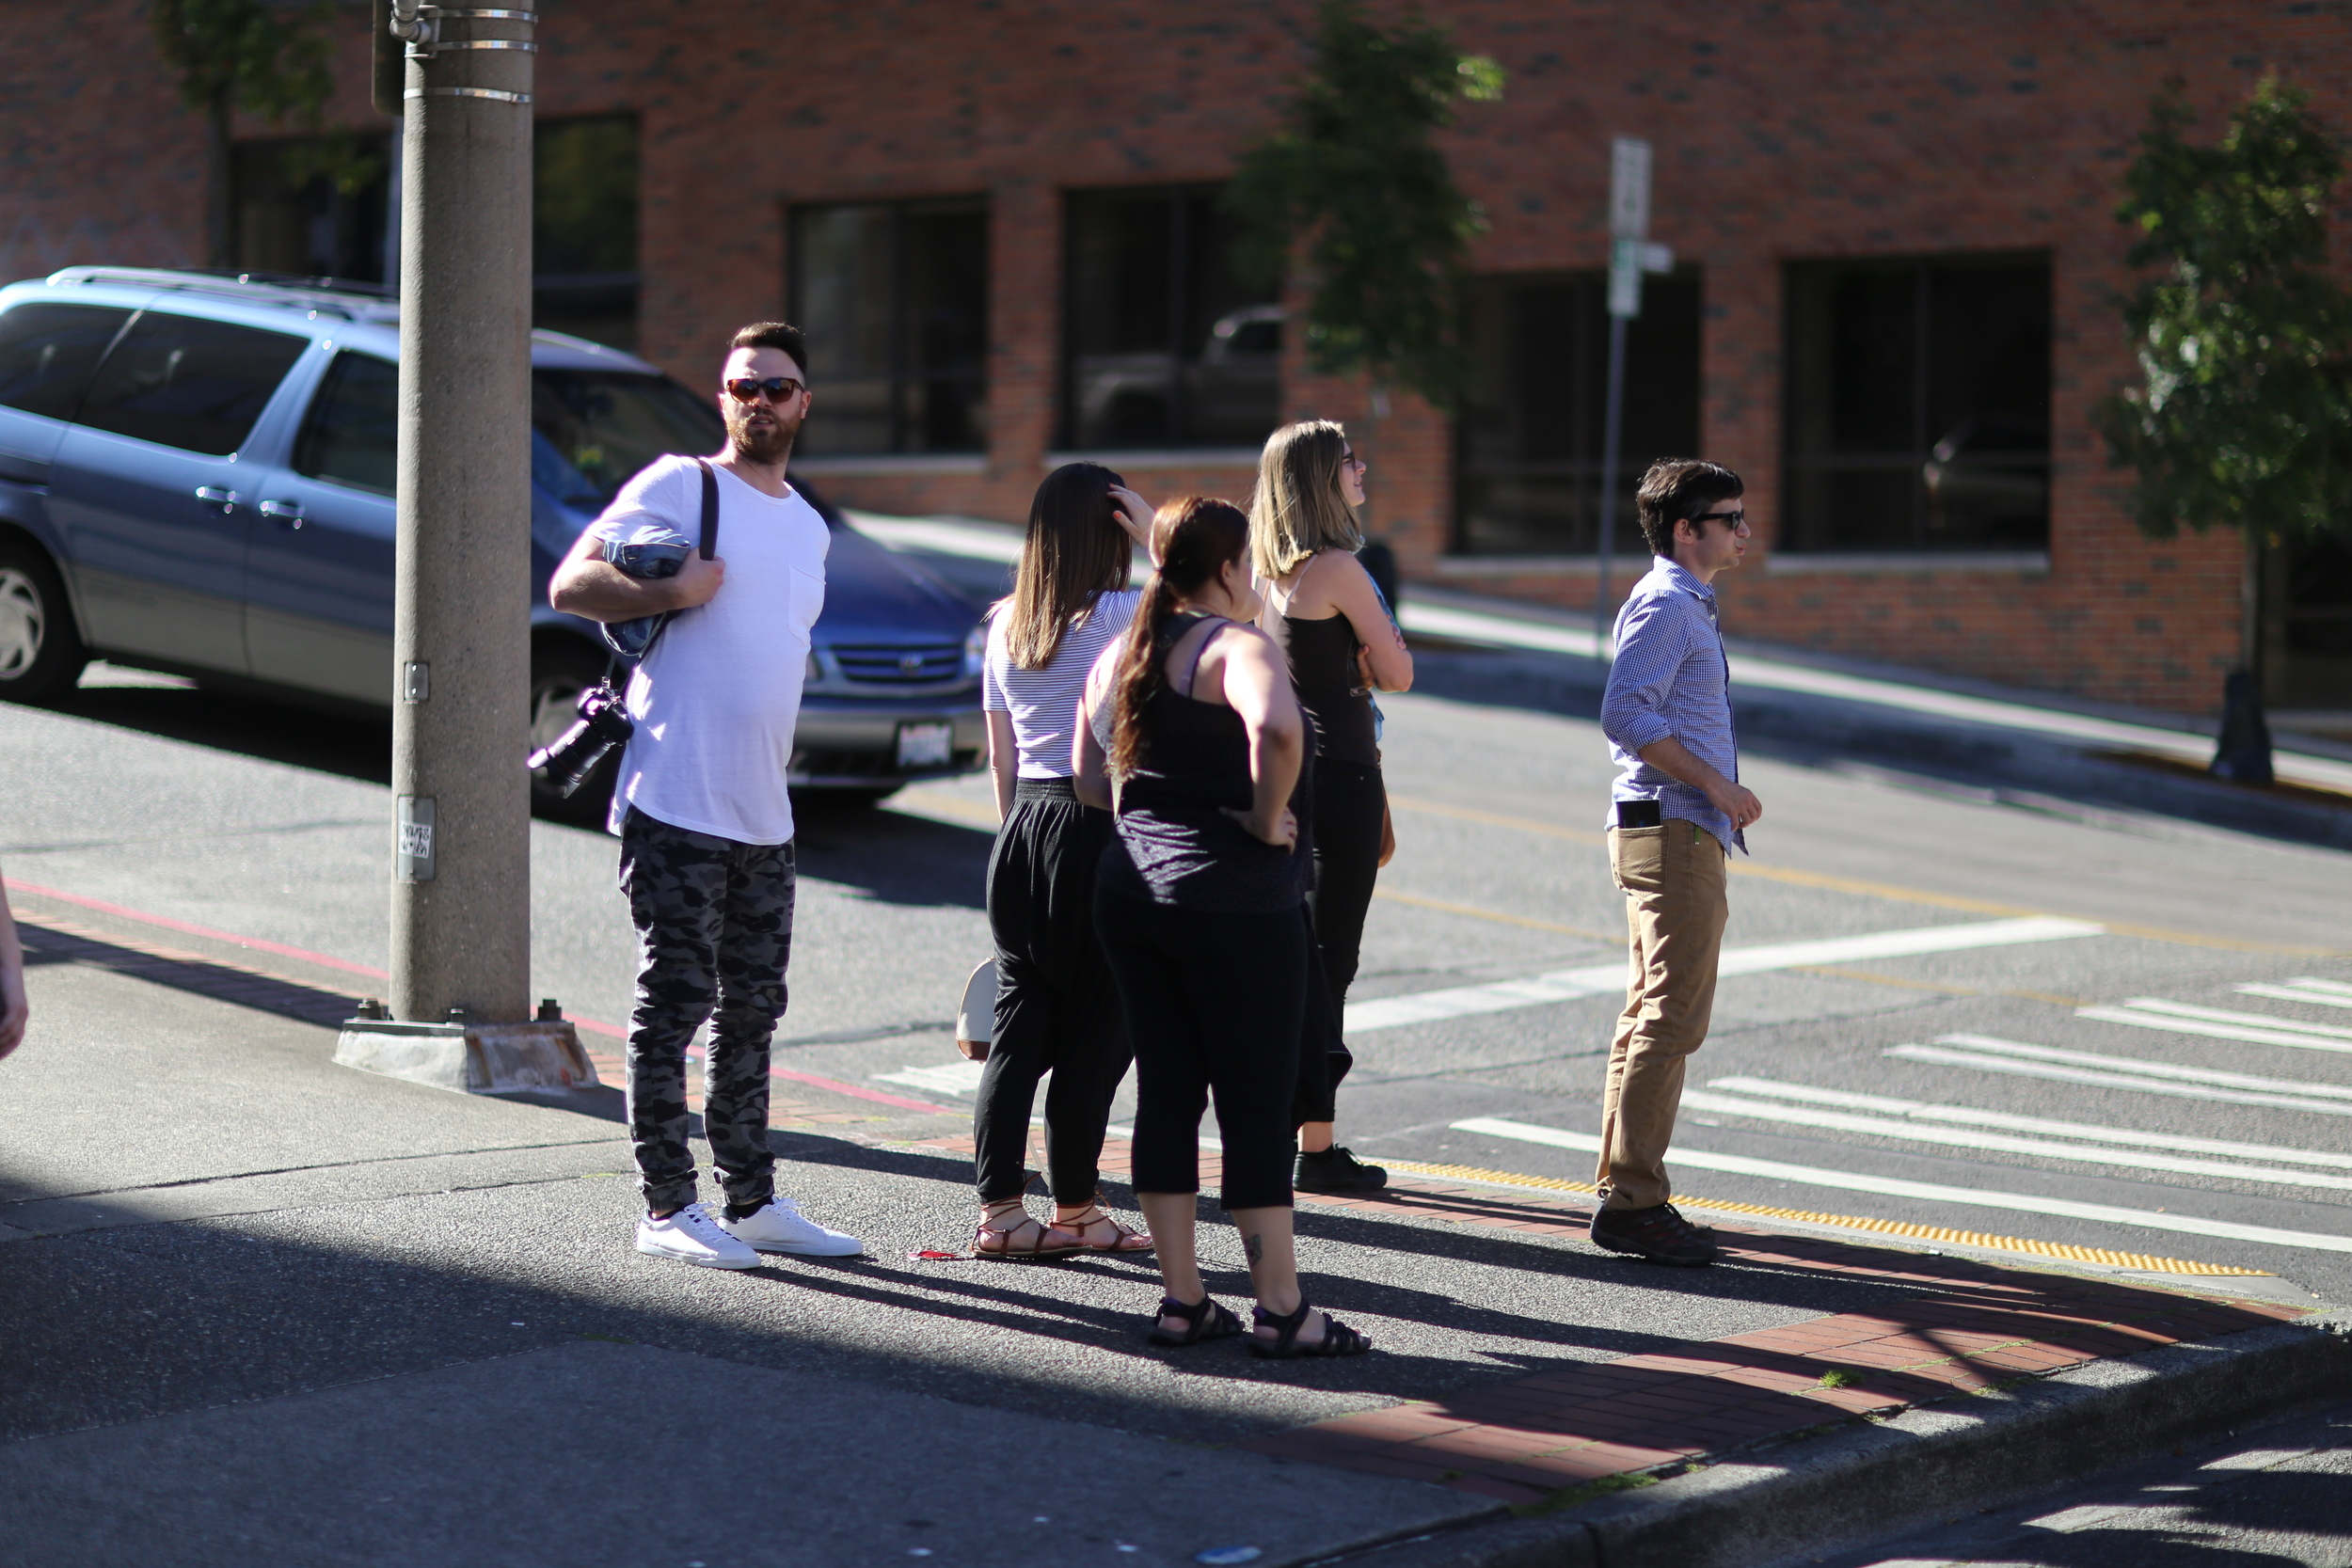 The tour group takes a long walk up Broadway in Tacoma